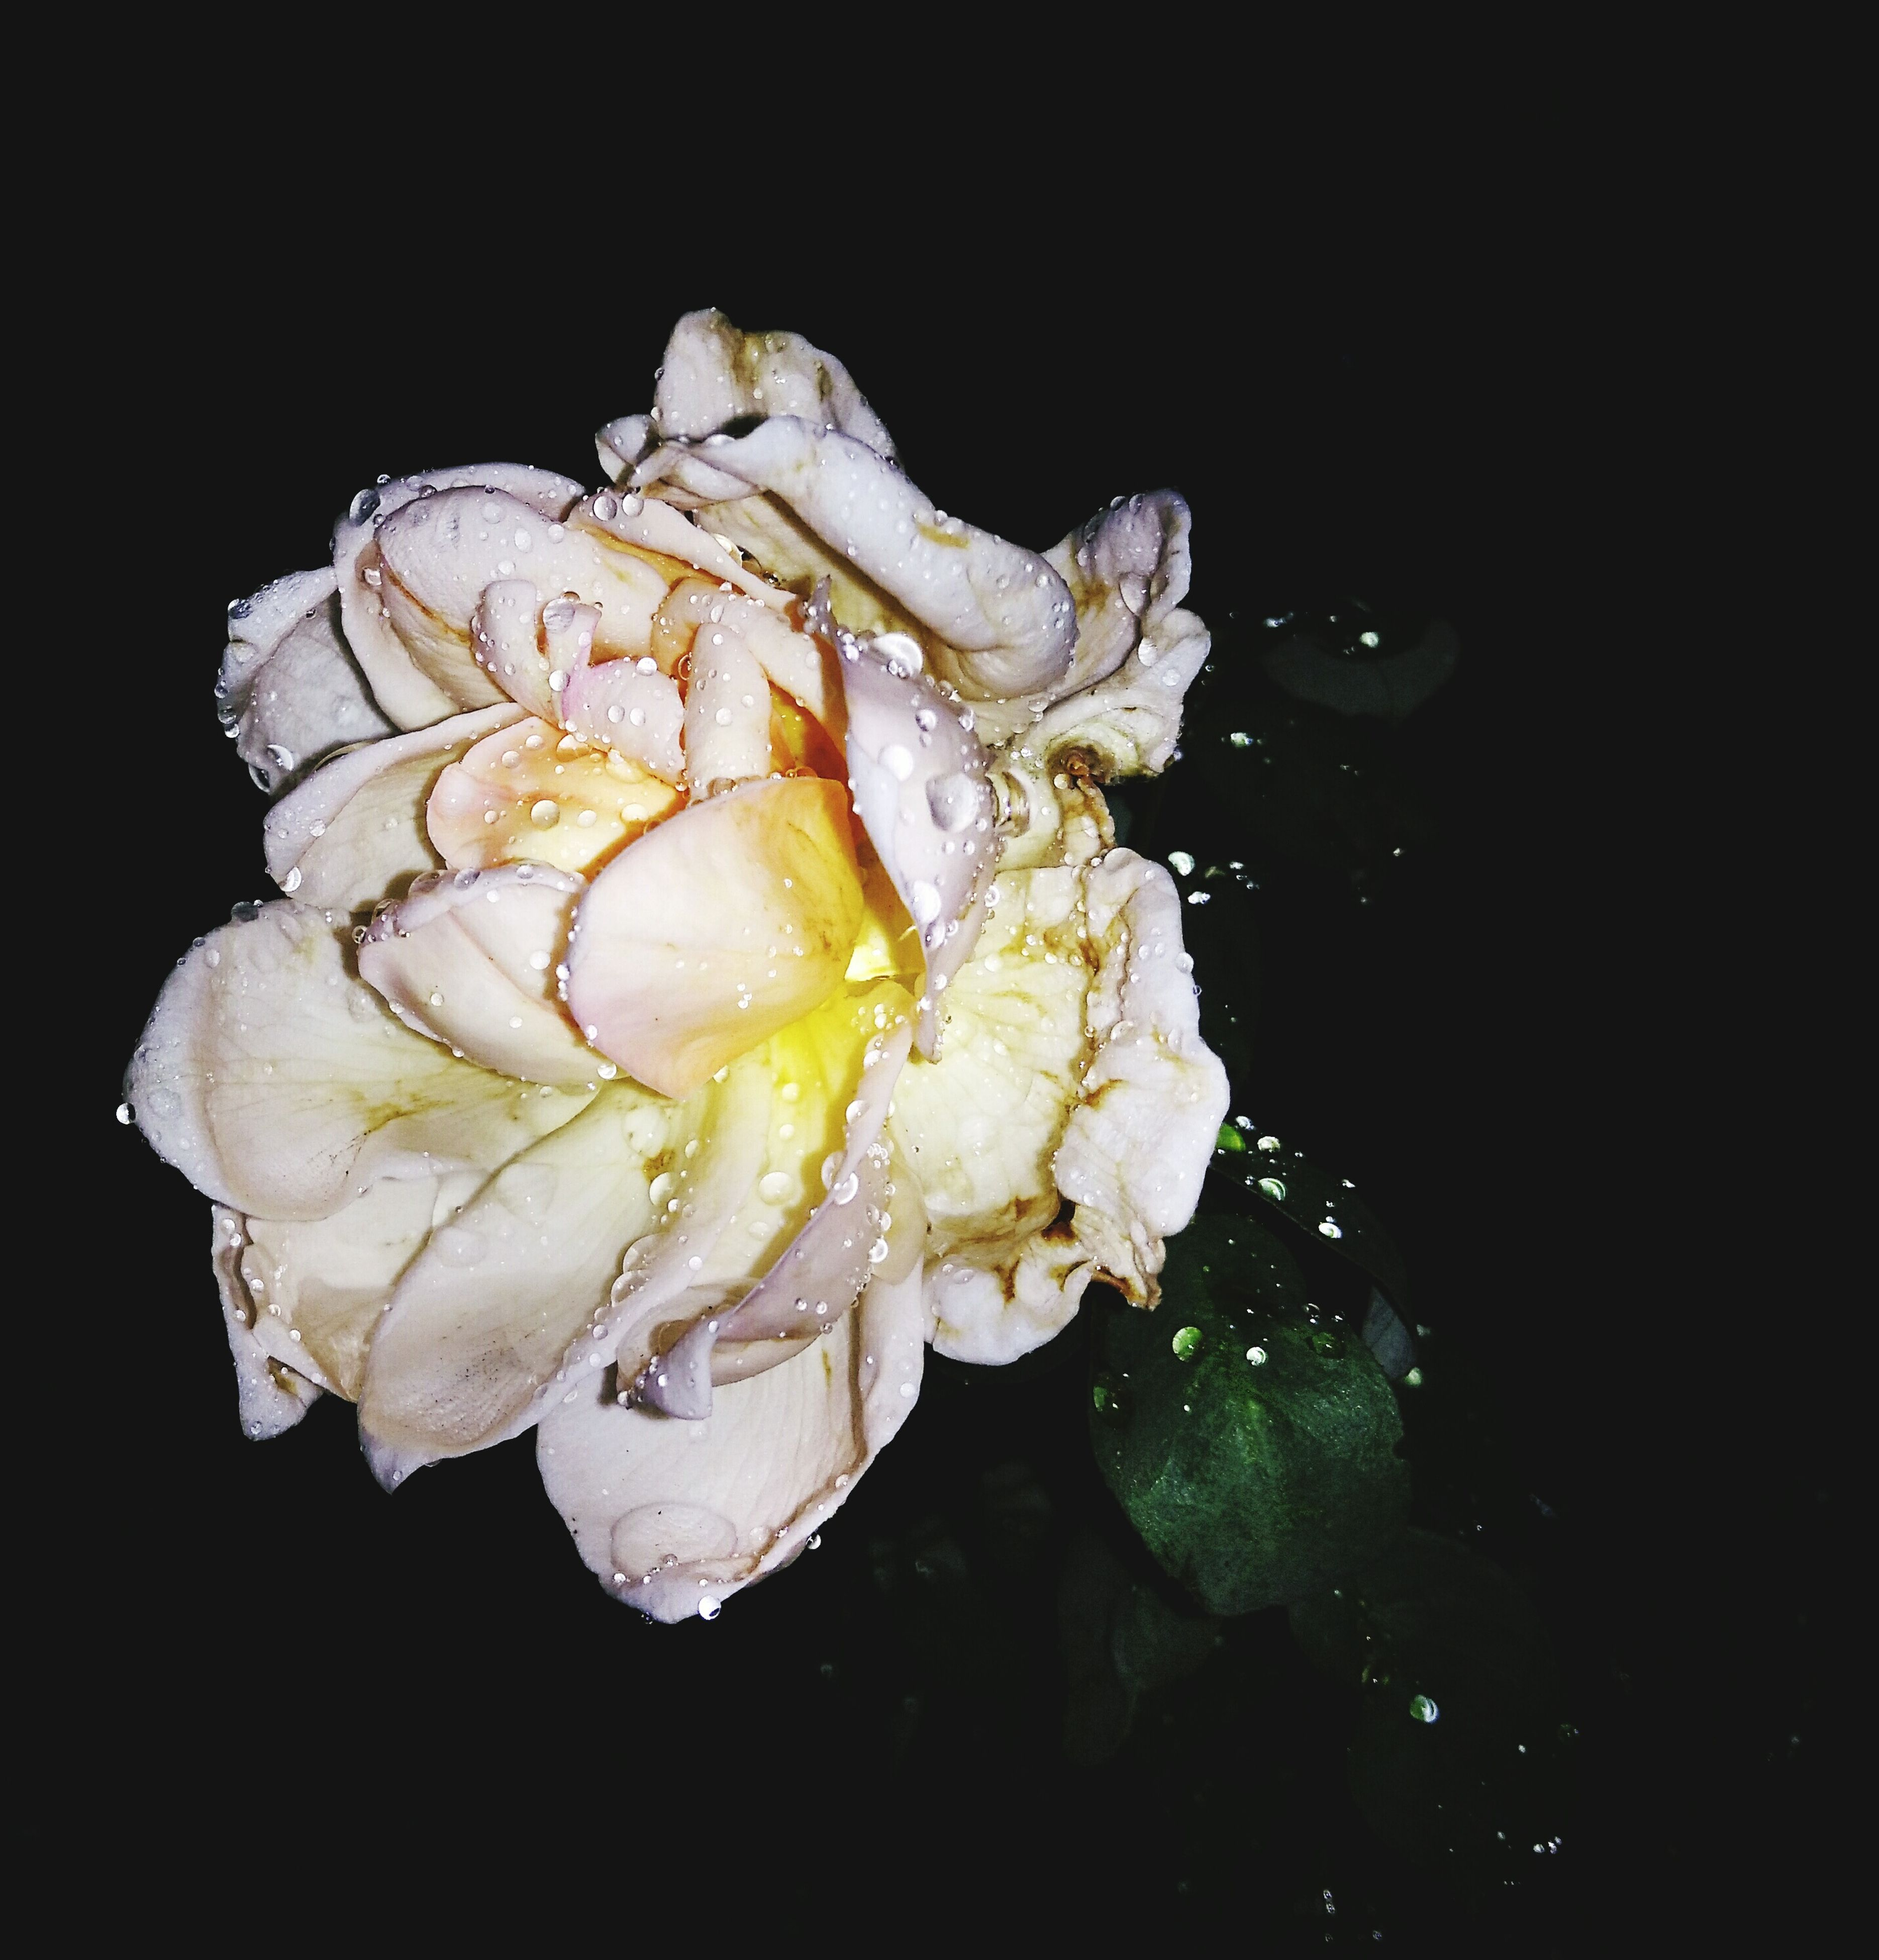 flower, freshness, black background, studio shot, petal, fragility, drop, flower head, close-up, water, beauty in nature, wet, white color, single flower, nature, night, rose - flower, copy space, dew, no people